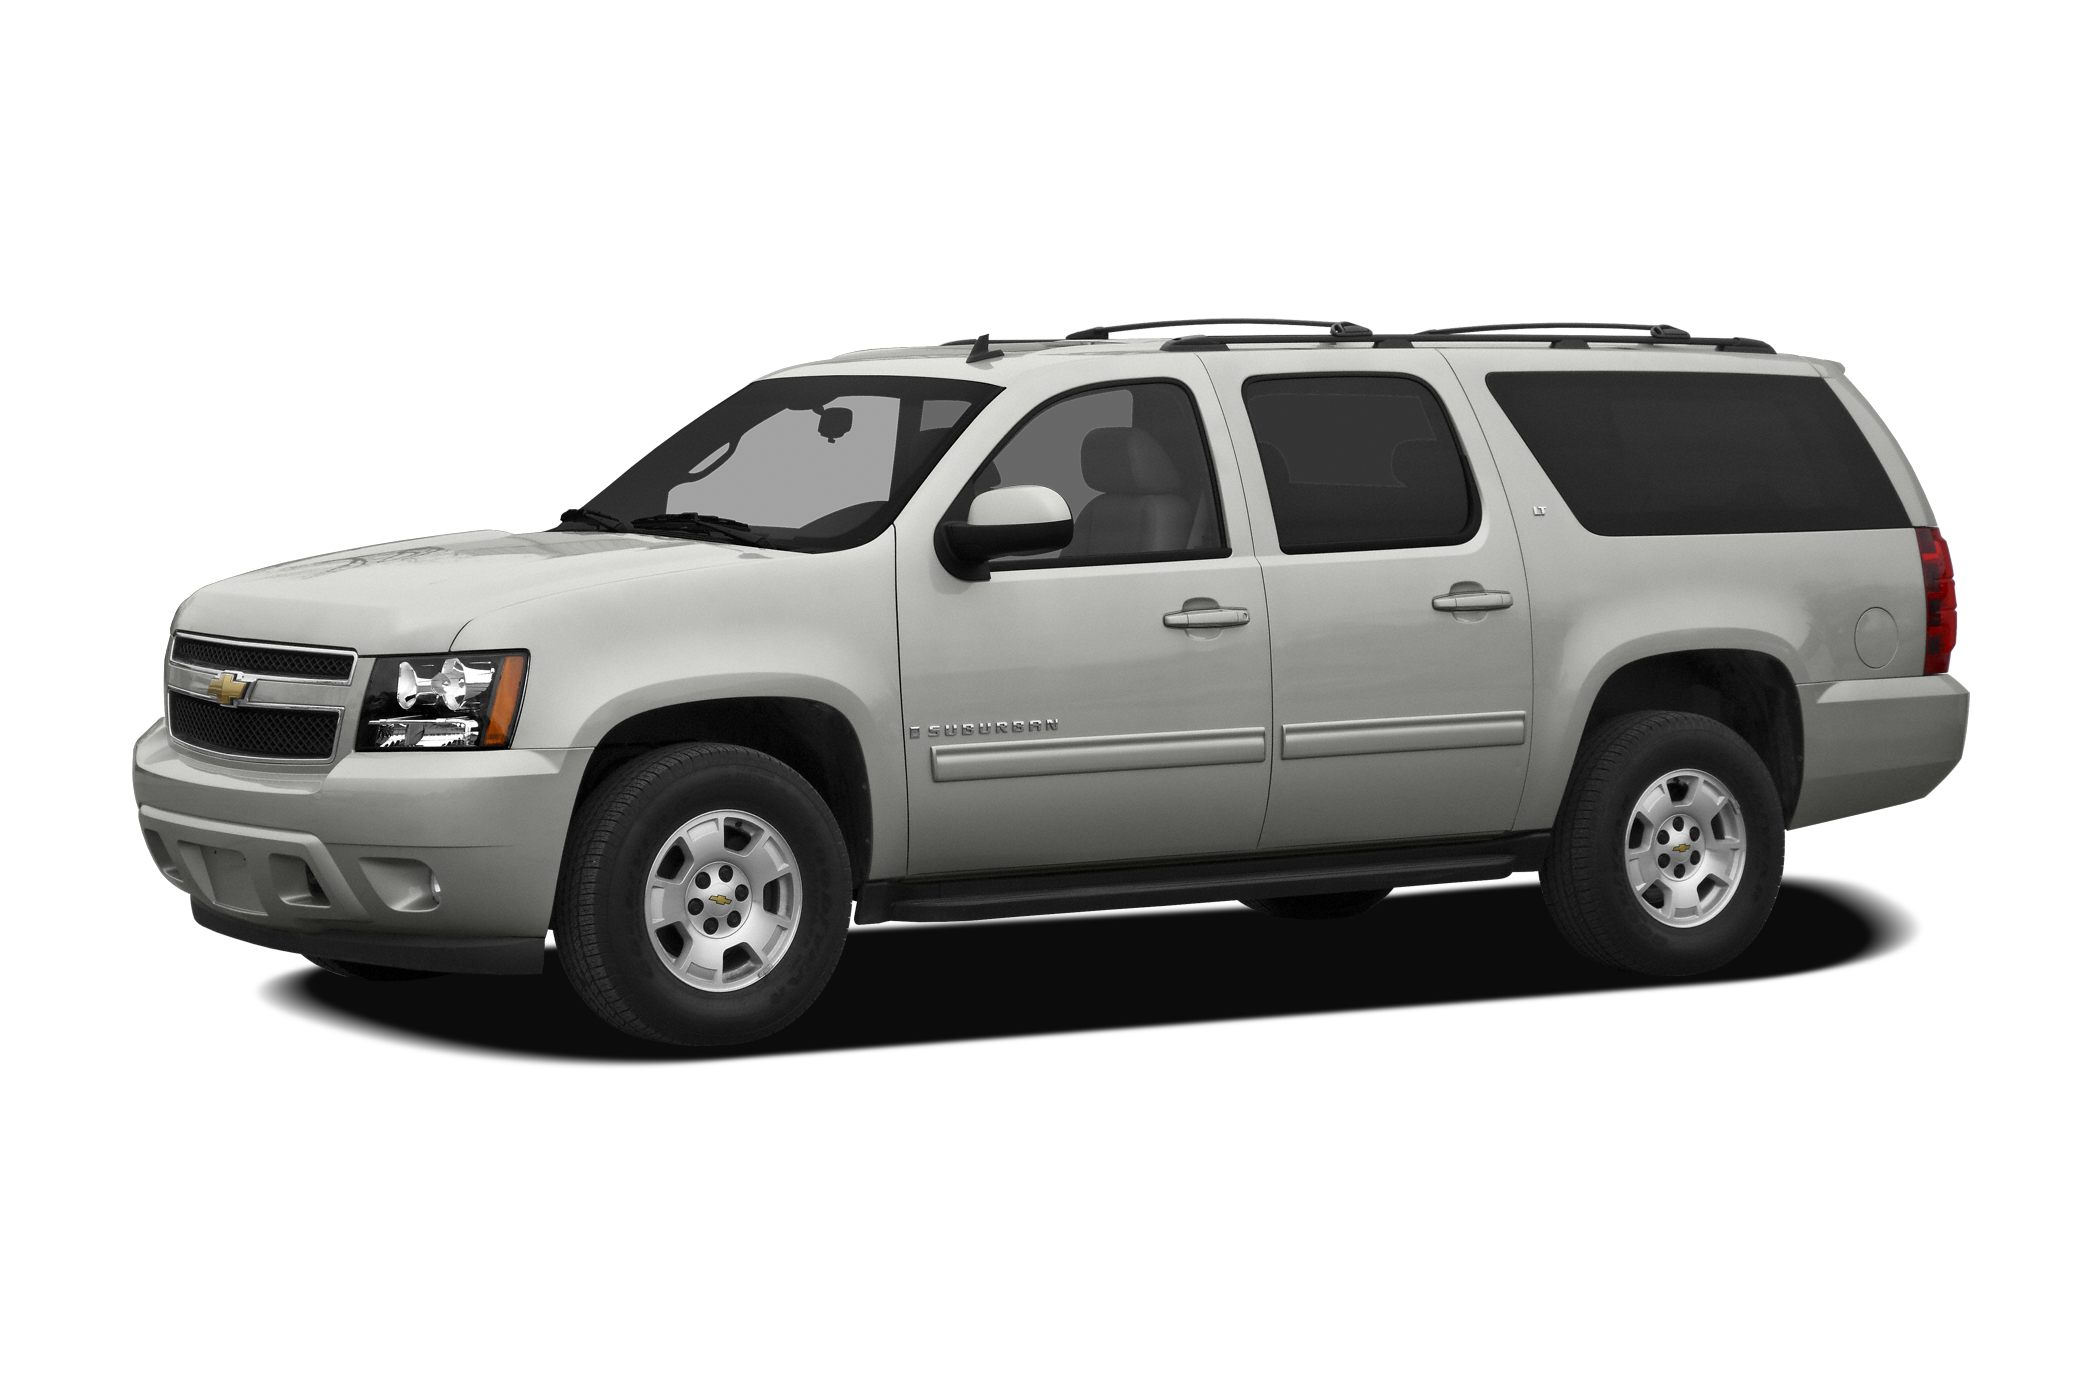 2010 Chevrolet Suburban 1500 LTZ SUV for sale in Mabank for $33,800 with 65,040 miles.